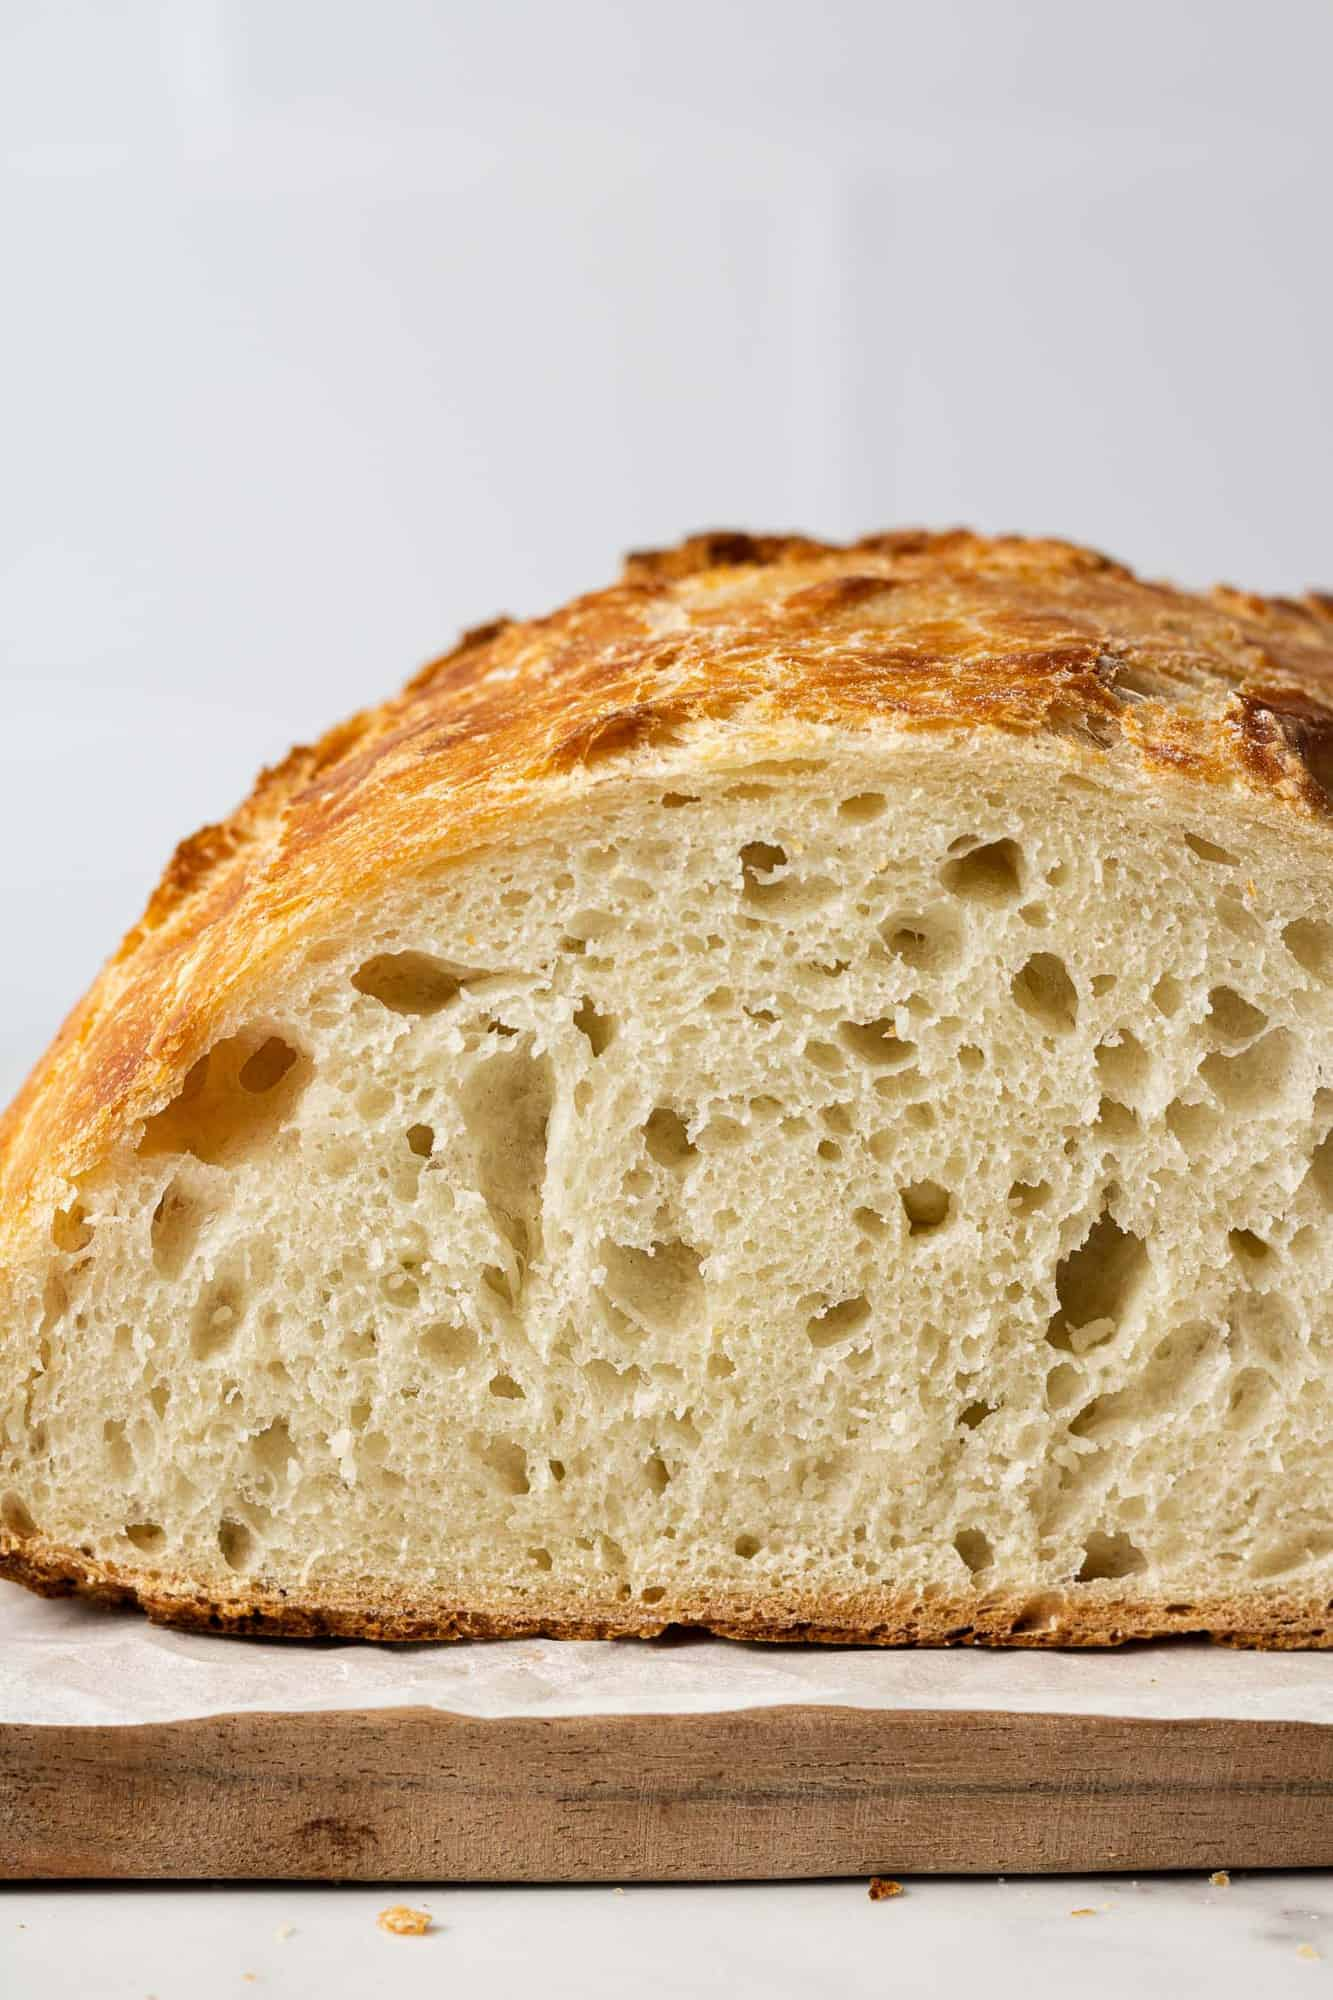 Cut bread to show crumb and texture.